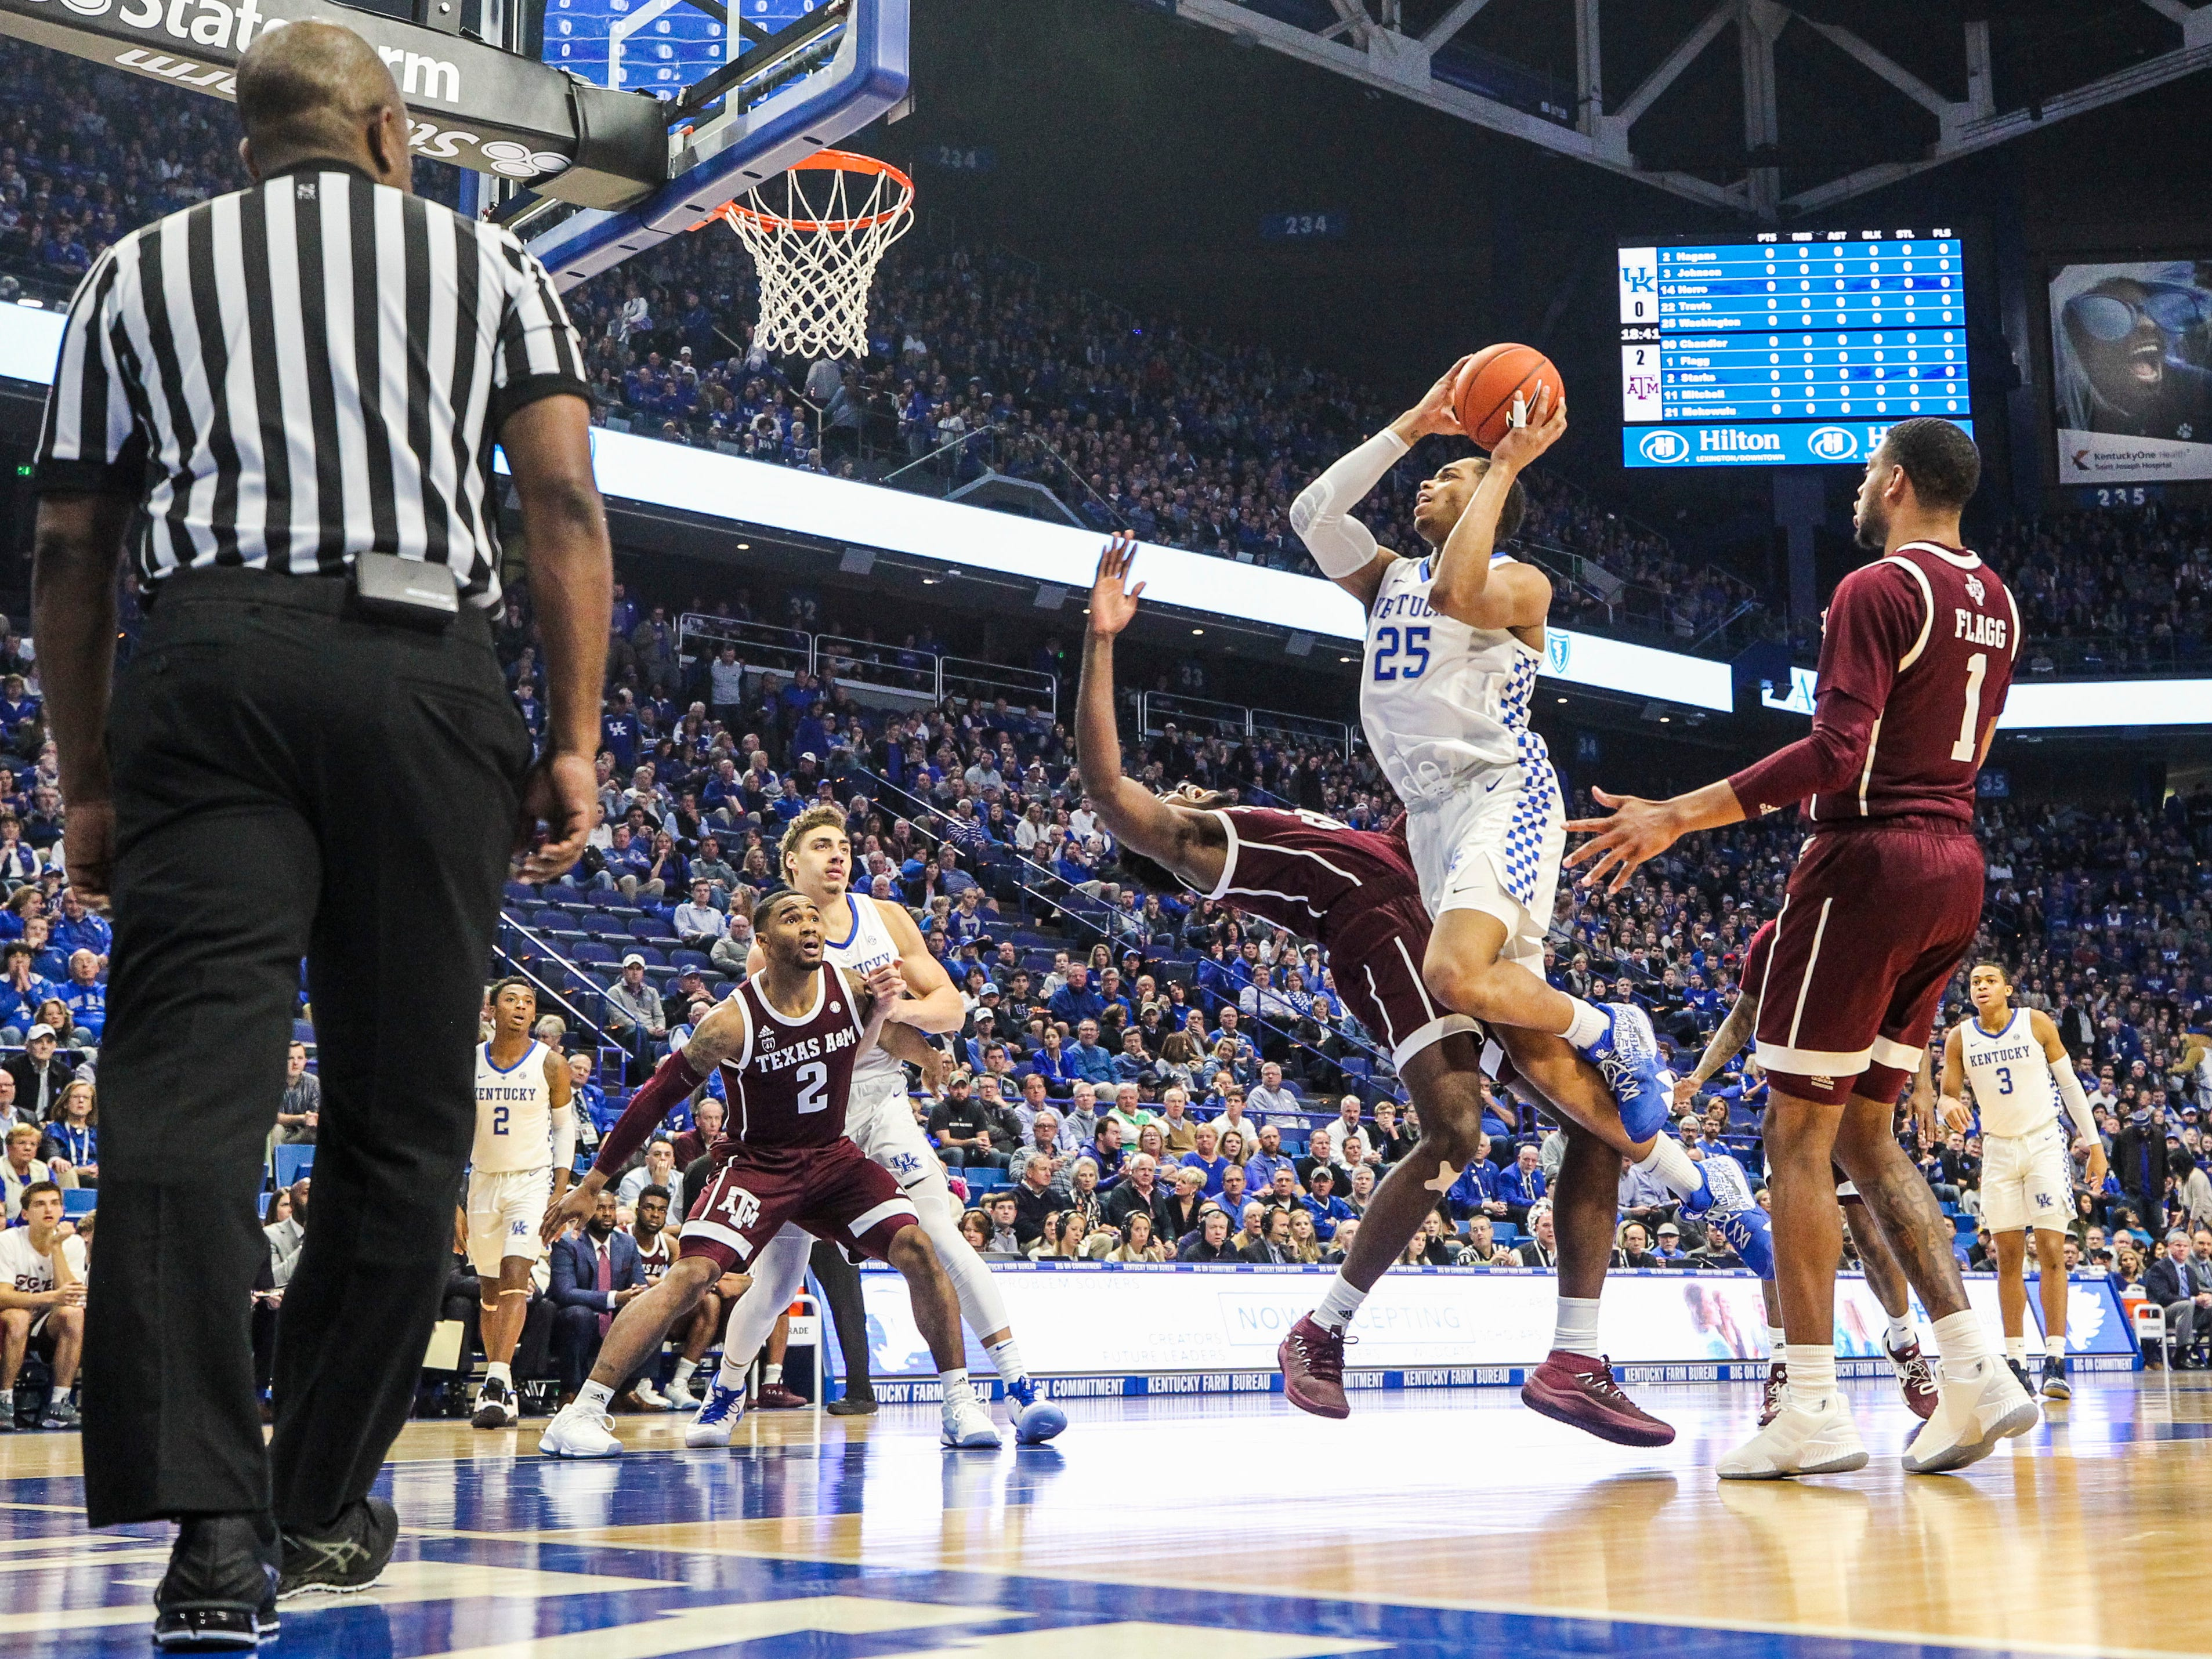 Kentucky's PJ Washington, Jr. tries to muscle past the Texas A&M's Christian Mekowulu in the first half Tuesday night at Rupp Arena in Lexington.